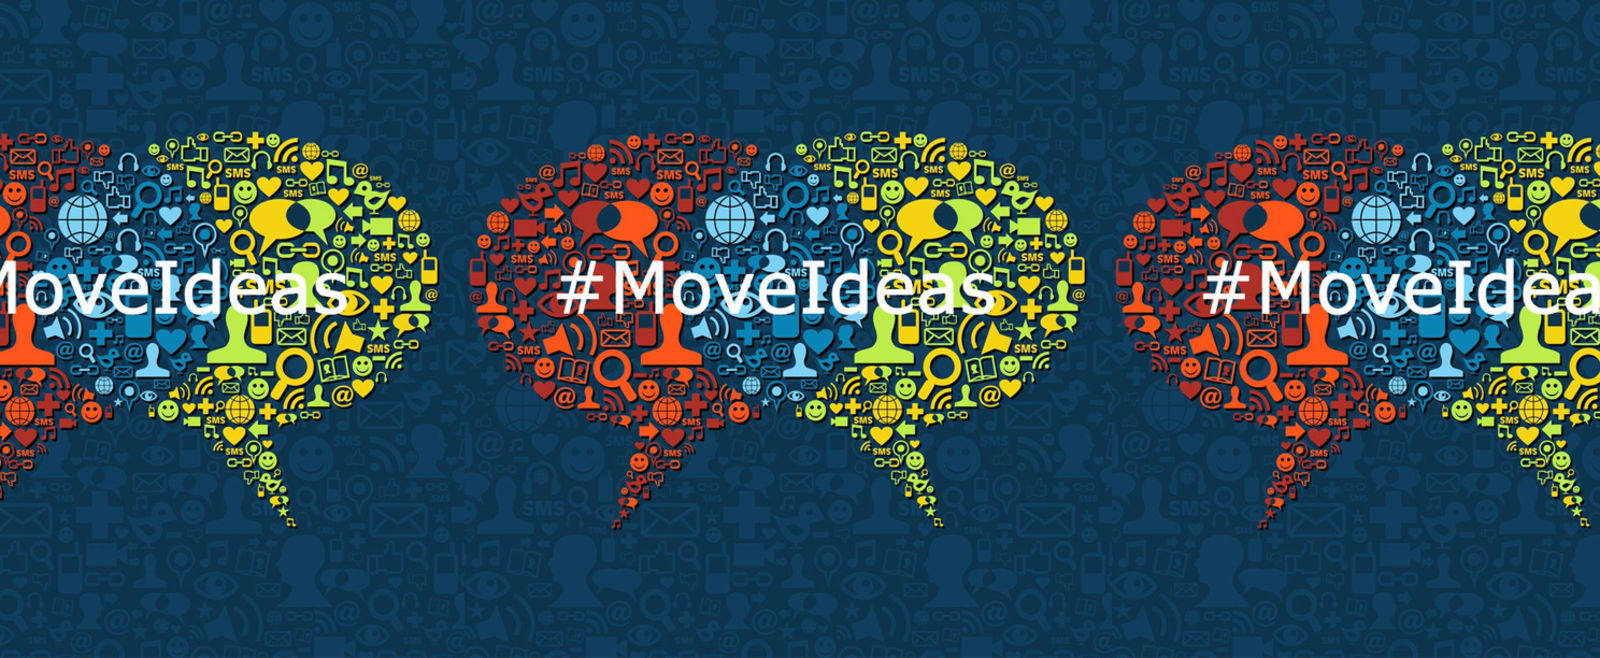 SSIR move ideas banner